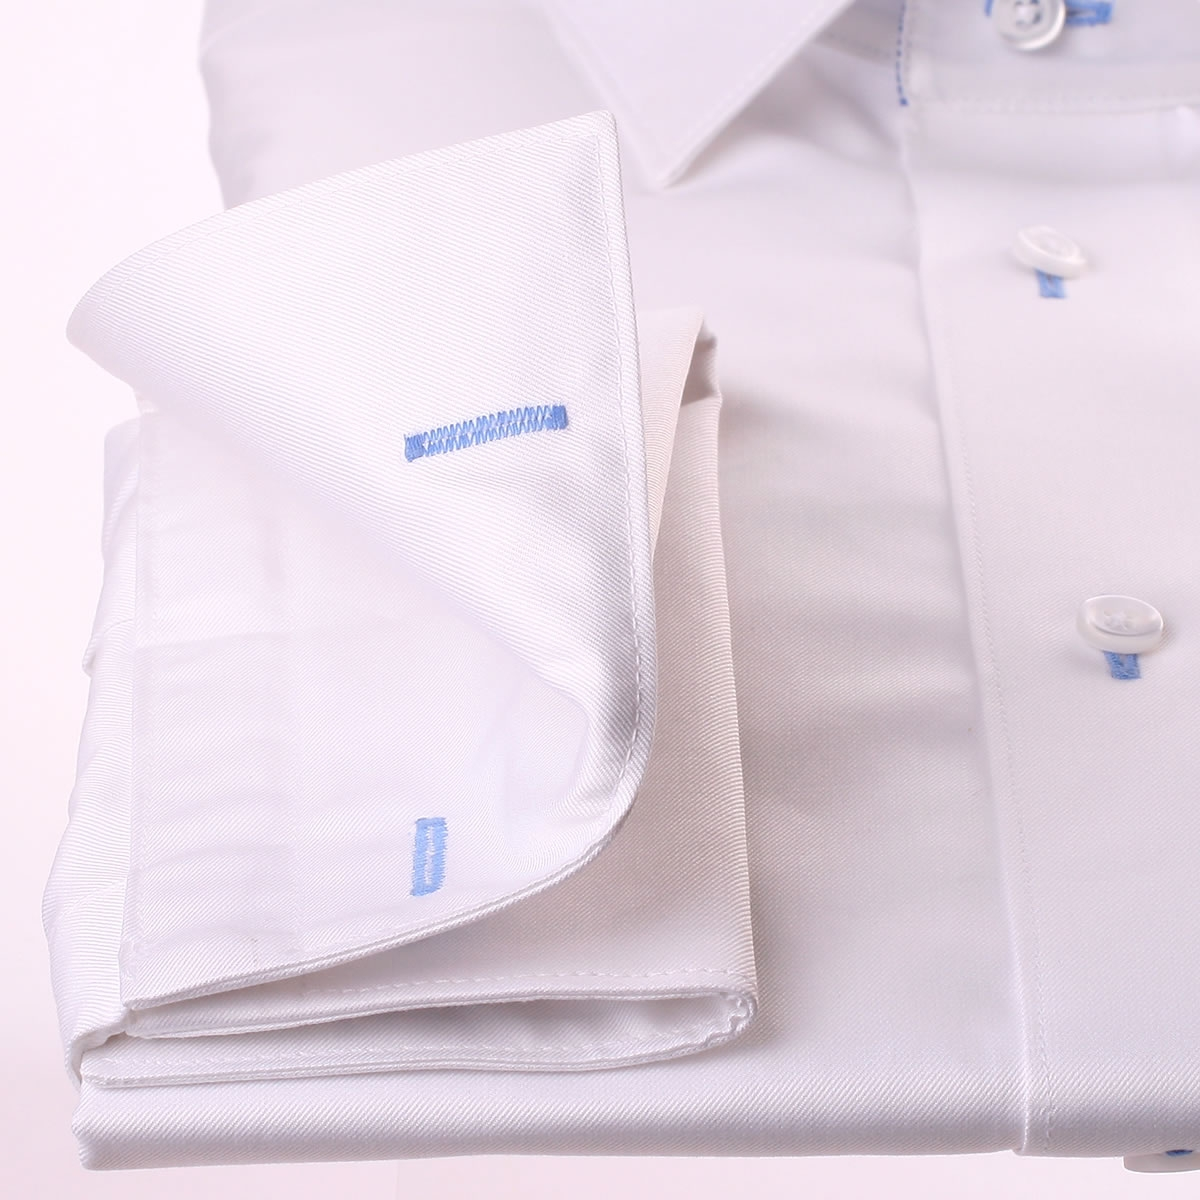 White french cuff shirt with blue striped collar and cuffs for Blue and white striped shirt with white collar